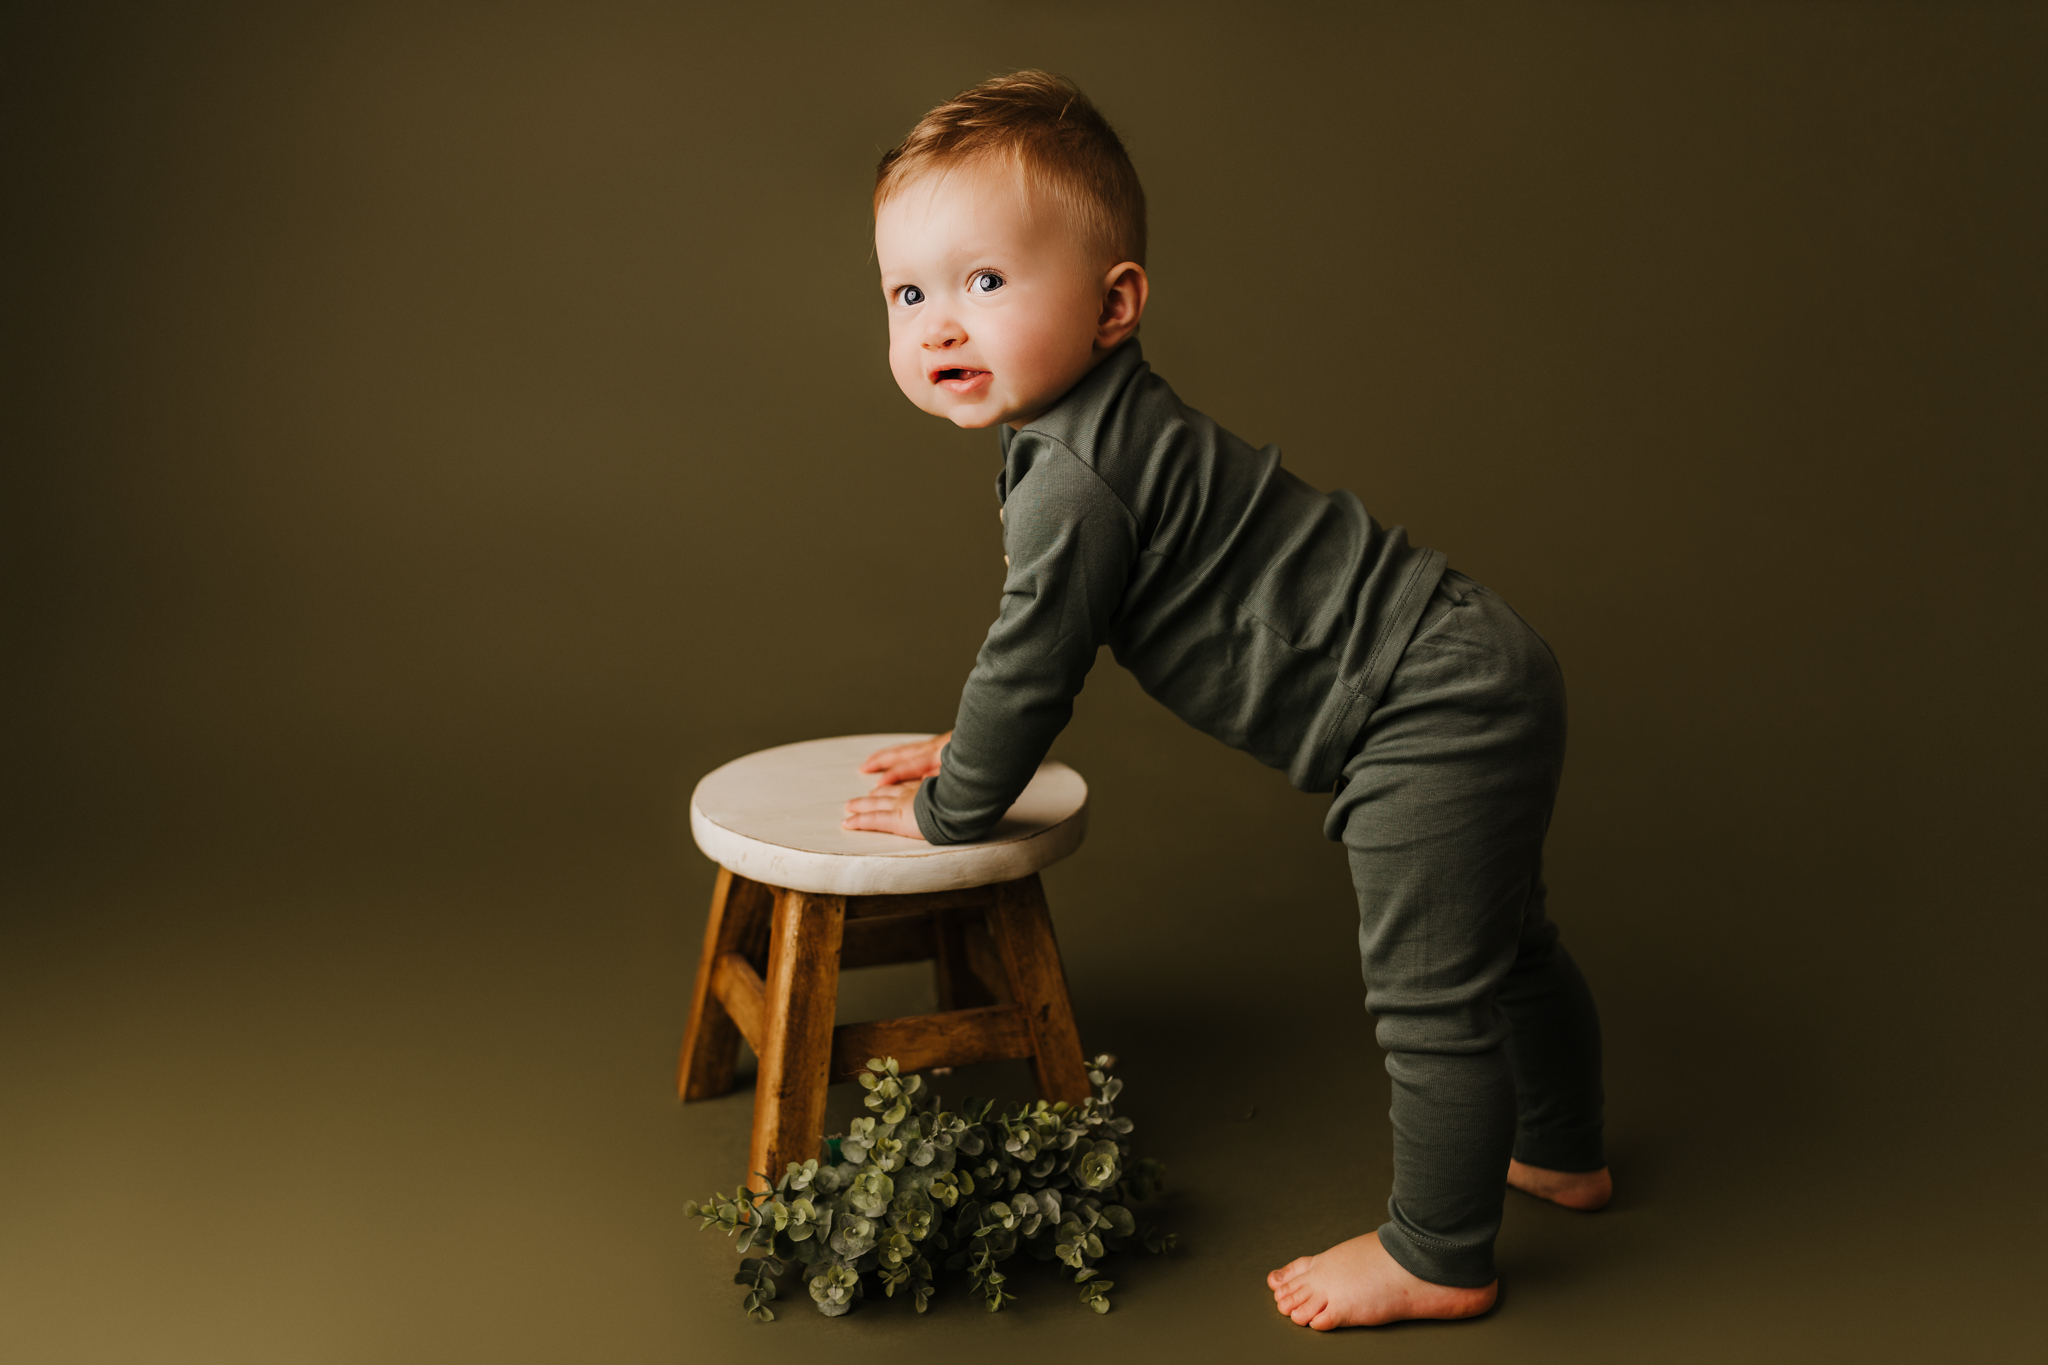 one year old leaning on stool while in front of green backdrop wearing green clothes and smiling at camera